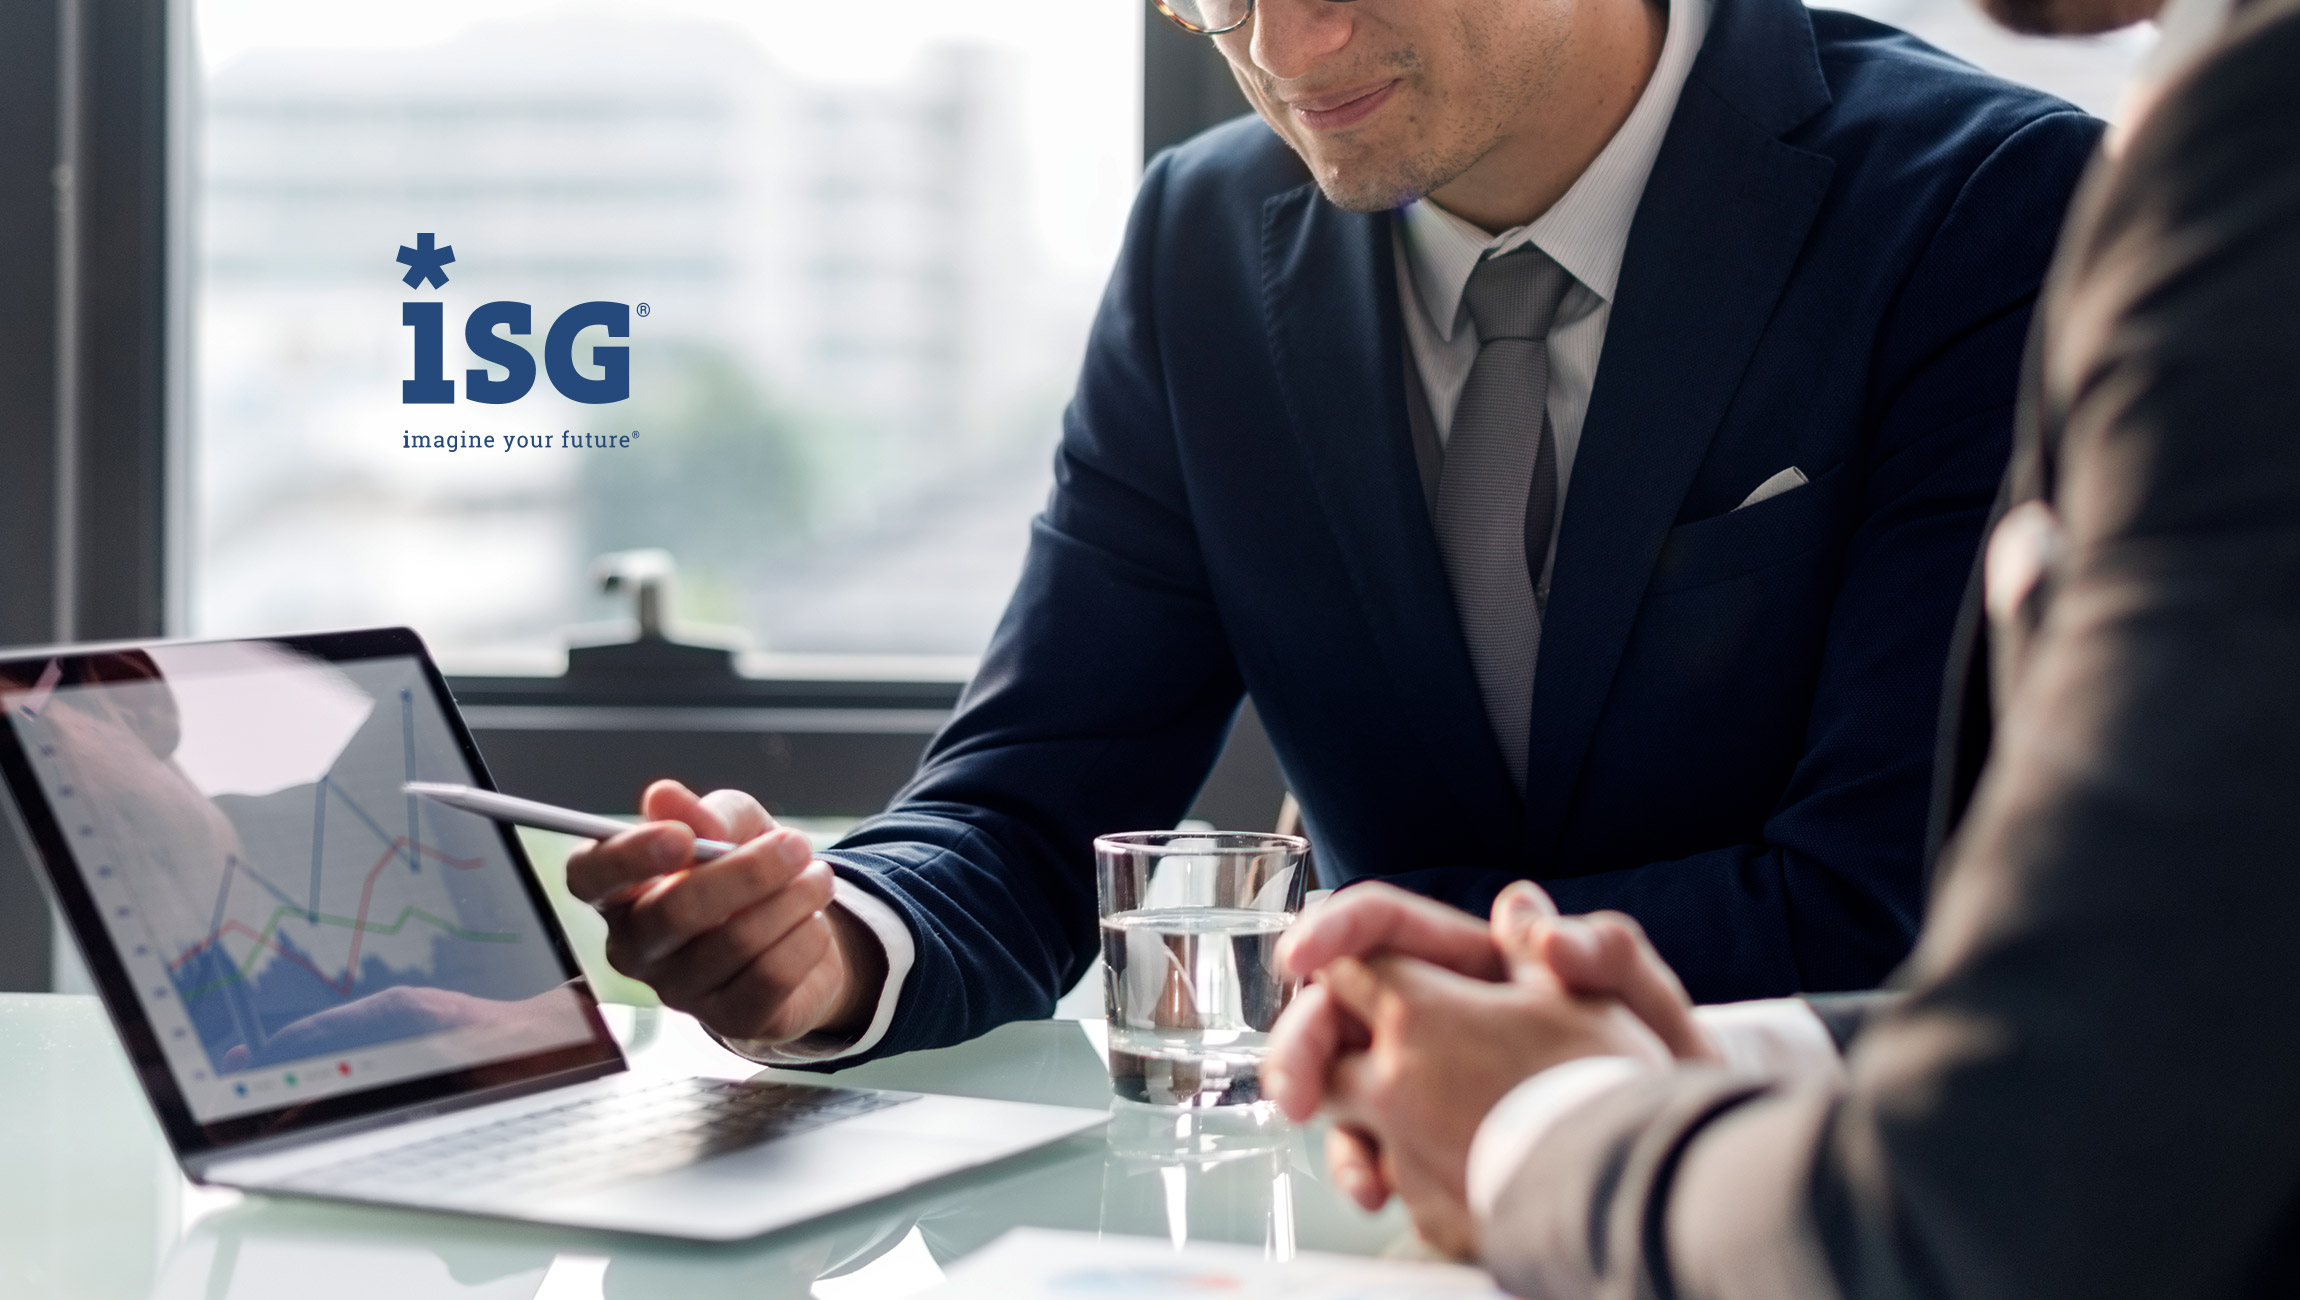 Driving Sales Pipelines With Data Analytics The Topic Of ISG Smartalks Webinar